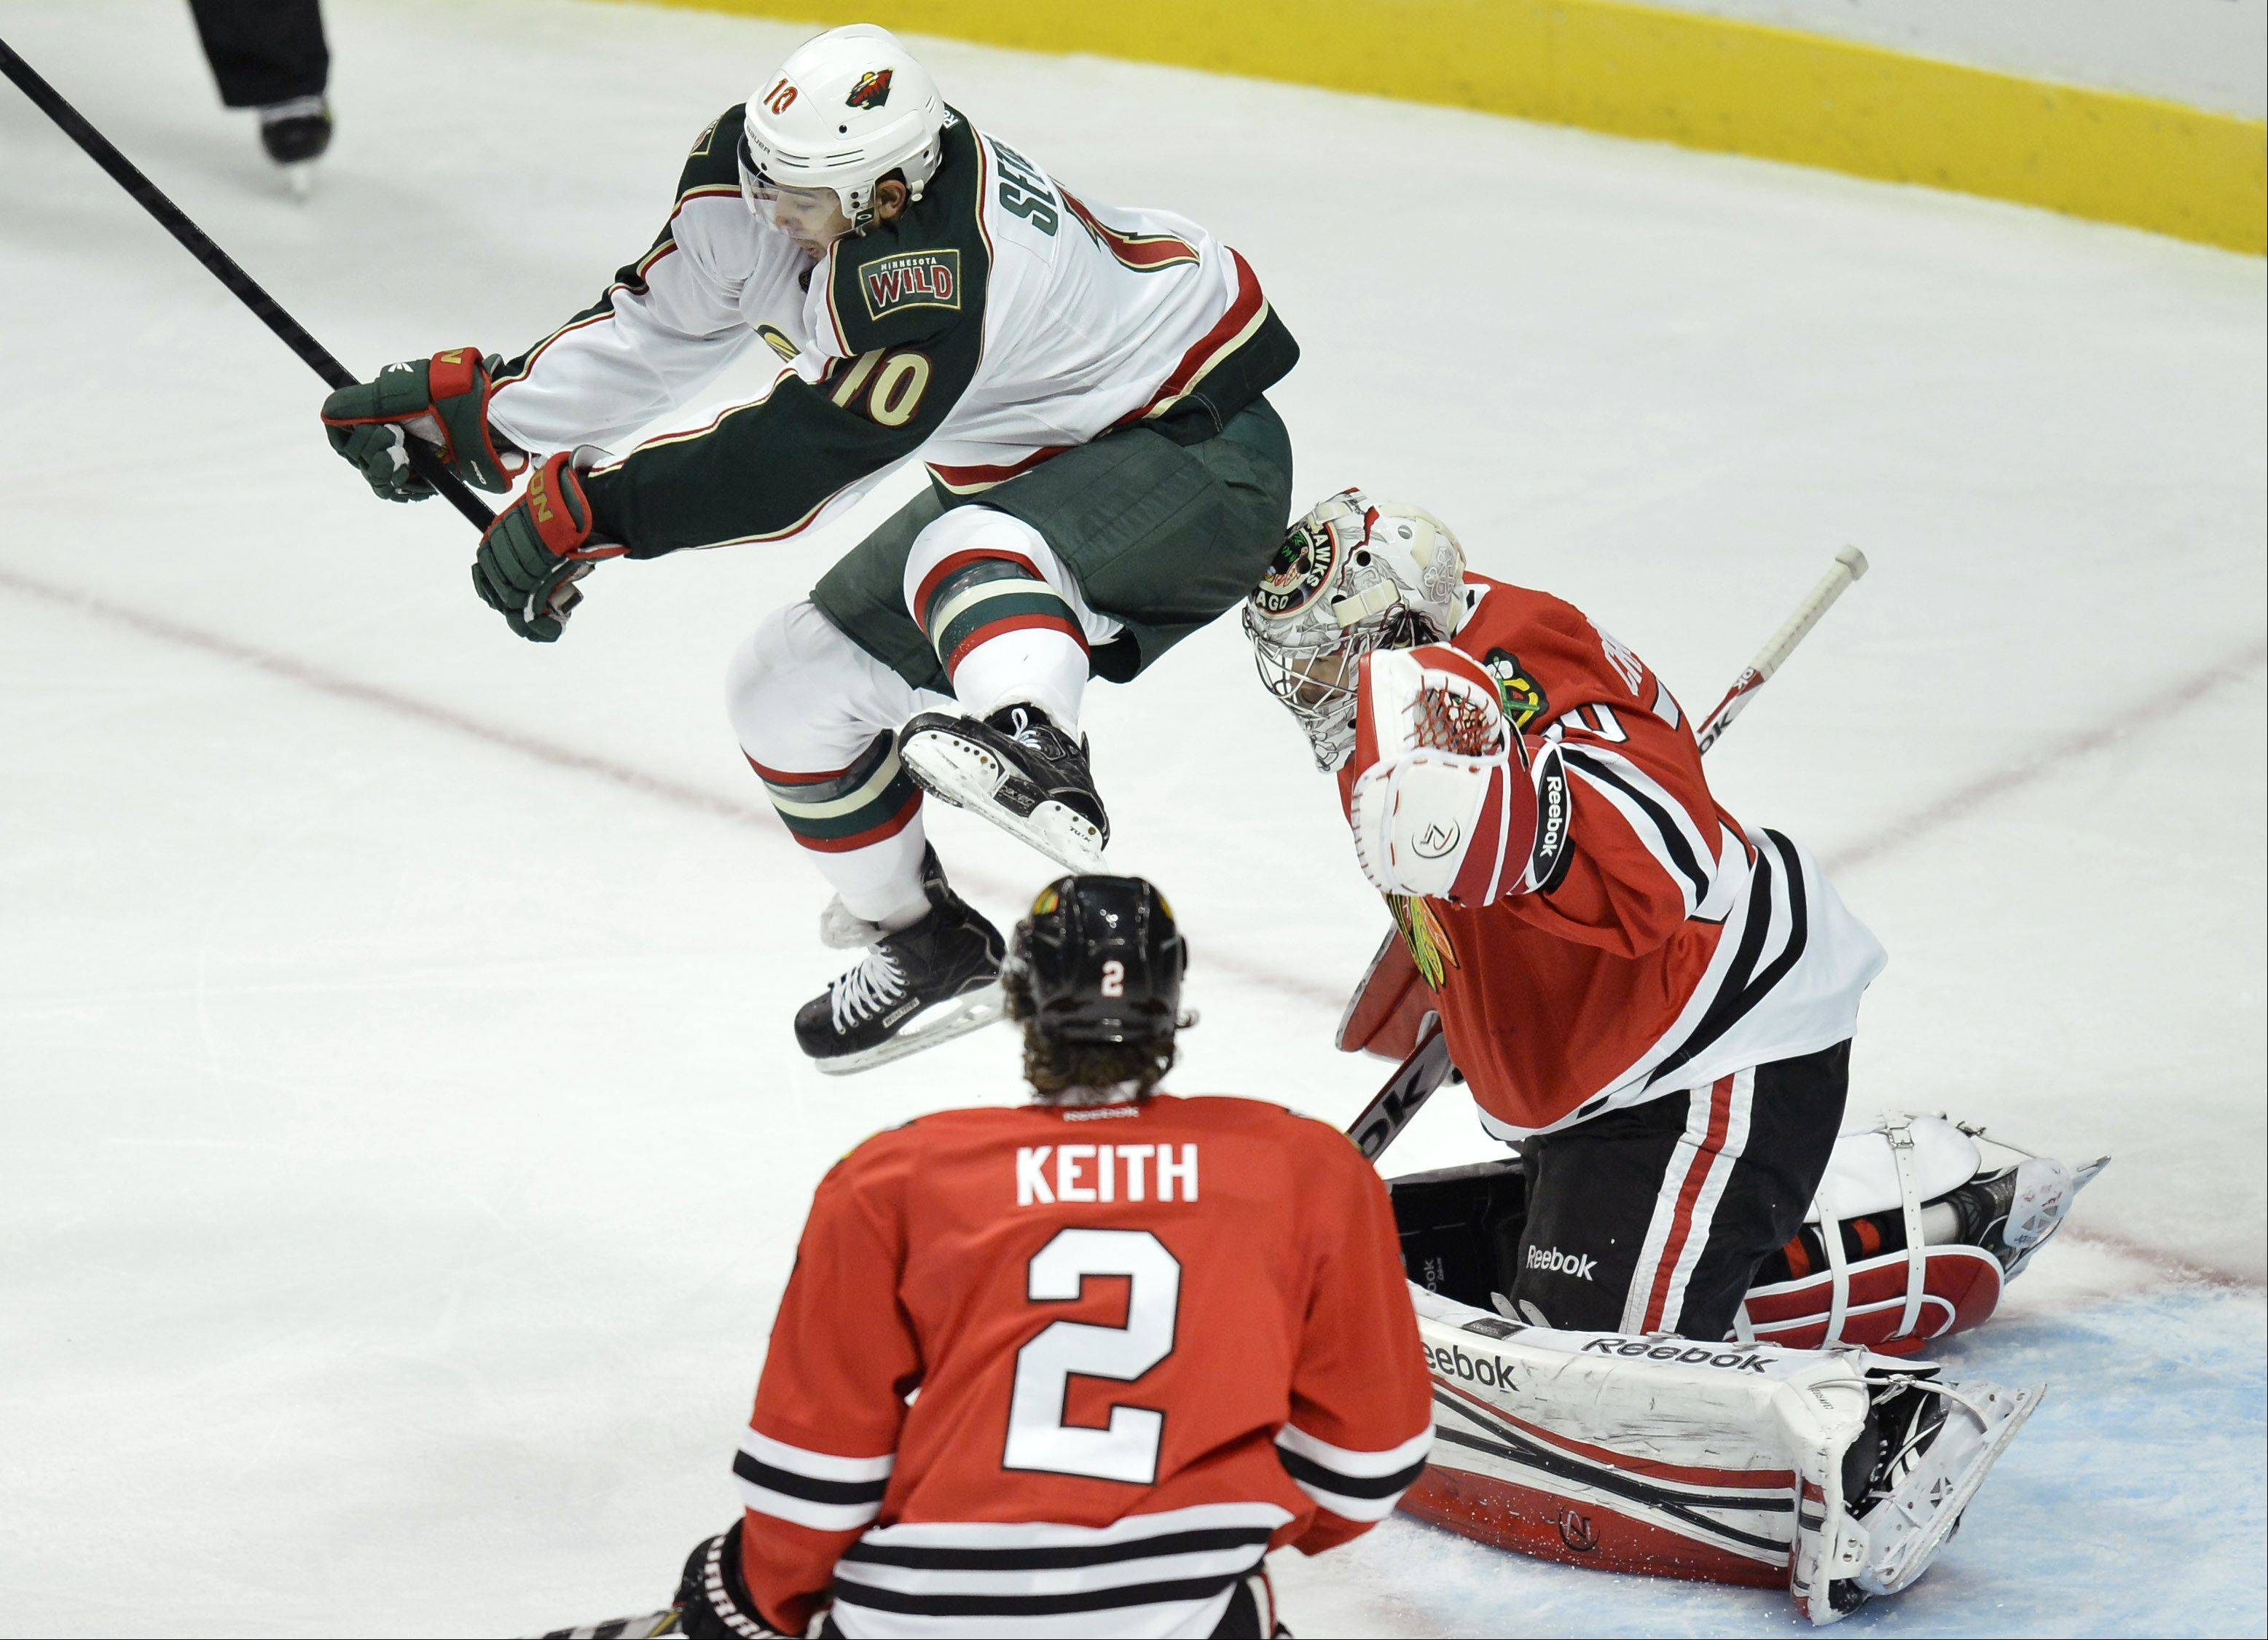 Minnesota Wild right wing Devin Setoguchi , left, leaps into the air to avoid a shot on Chicago Blackhawks goalie Corey Crawford, right, during the first period.